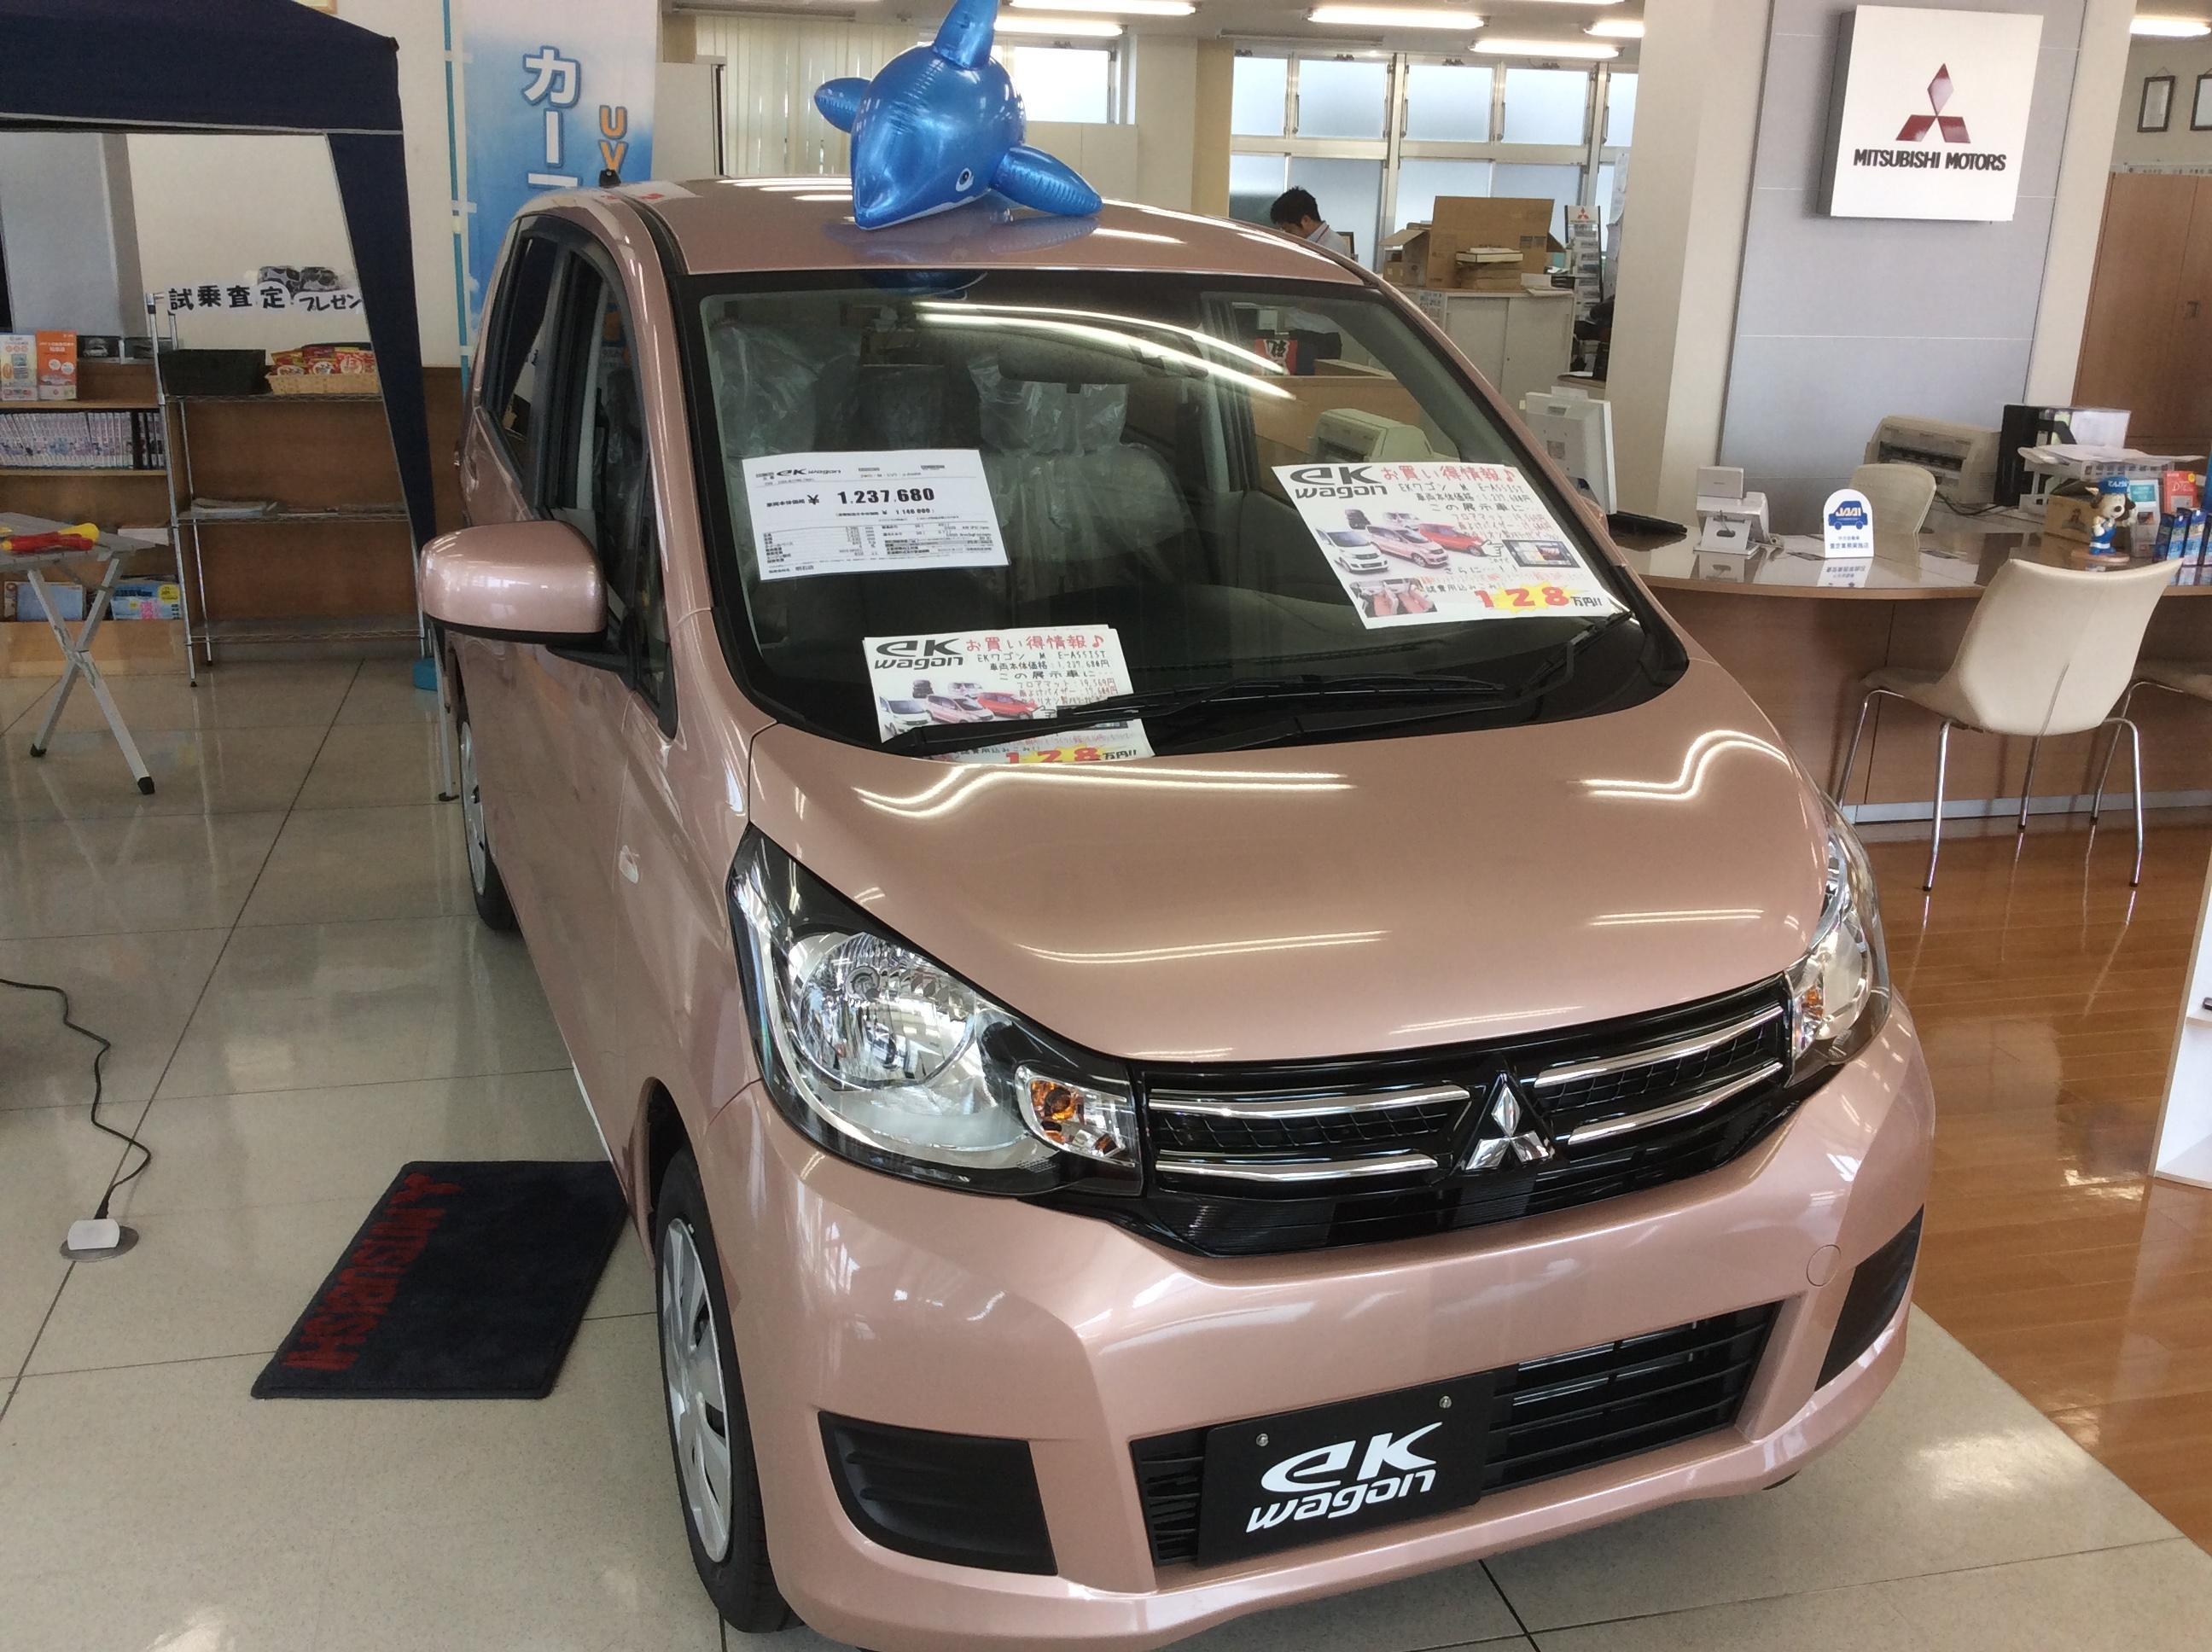 https://www.hyogo-mitsubishi.com/shop/akashi/files/61b2a3dd6781665fb098f3c0a1cedfffc03613bd.jpeg